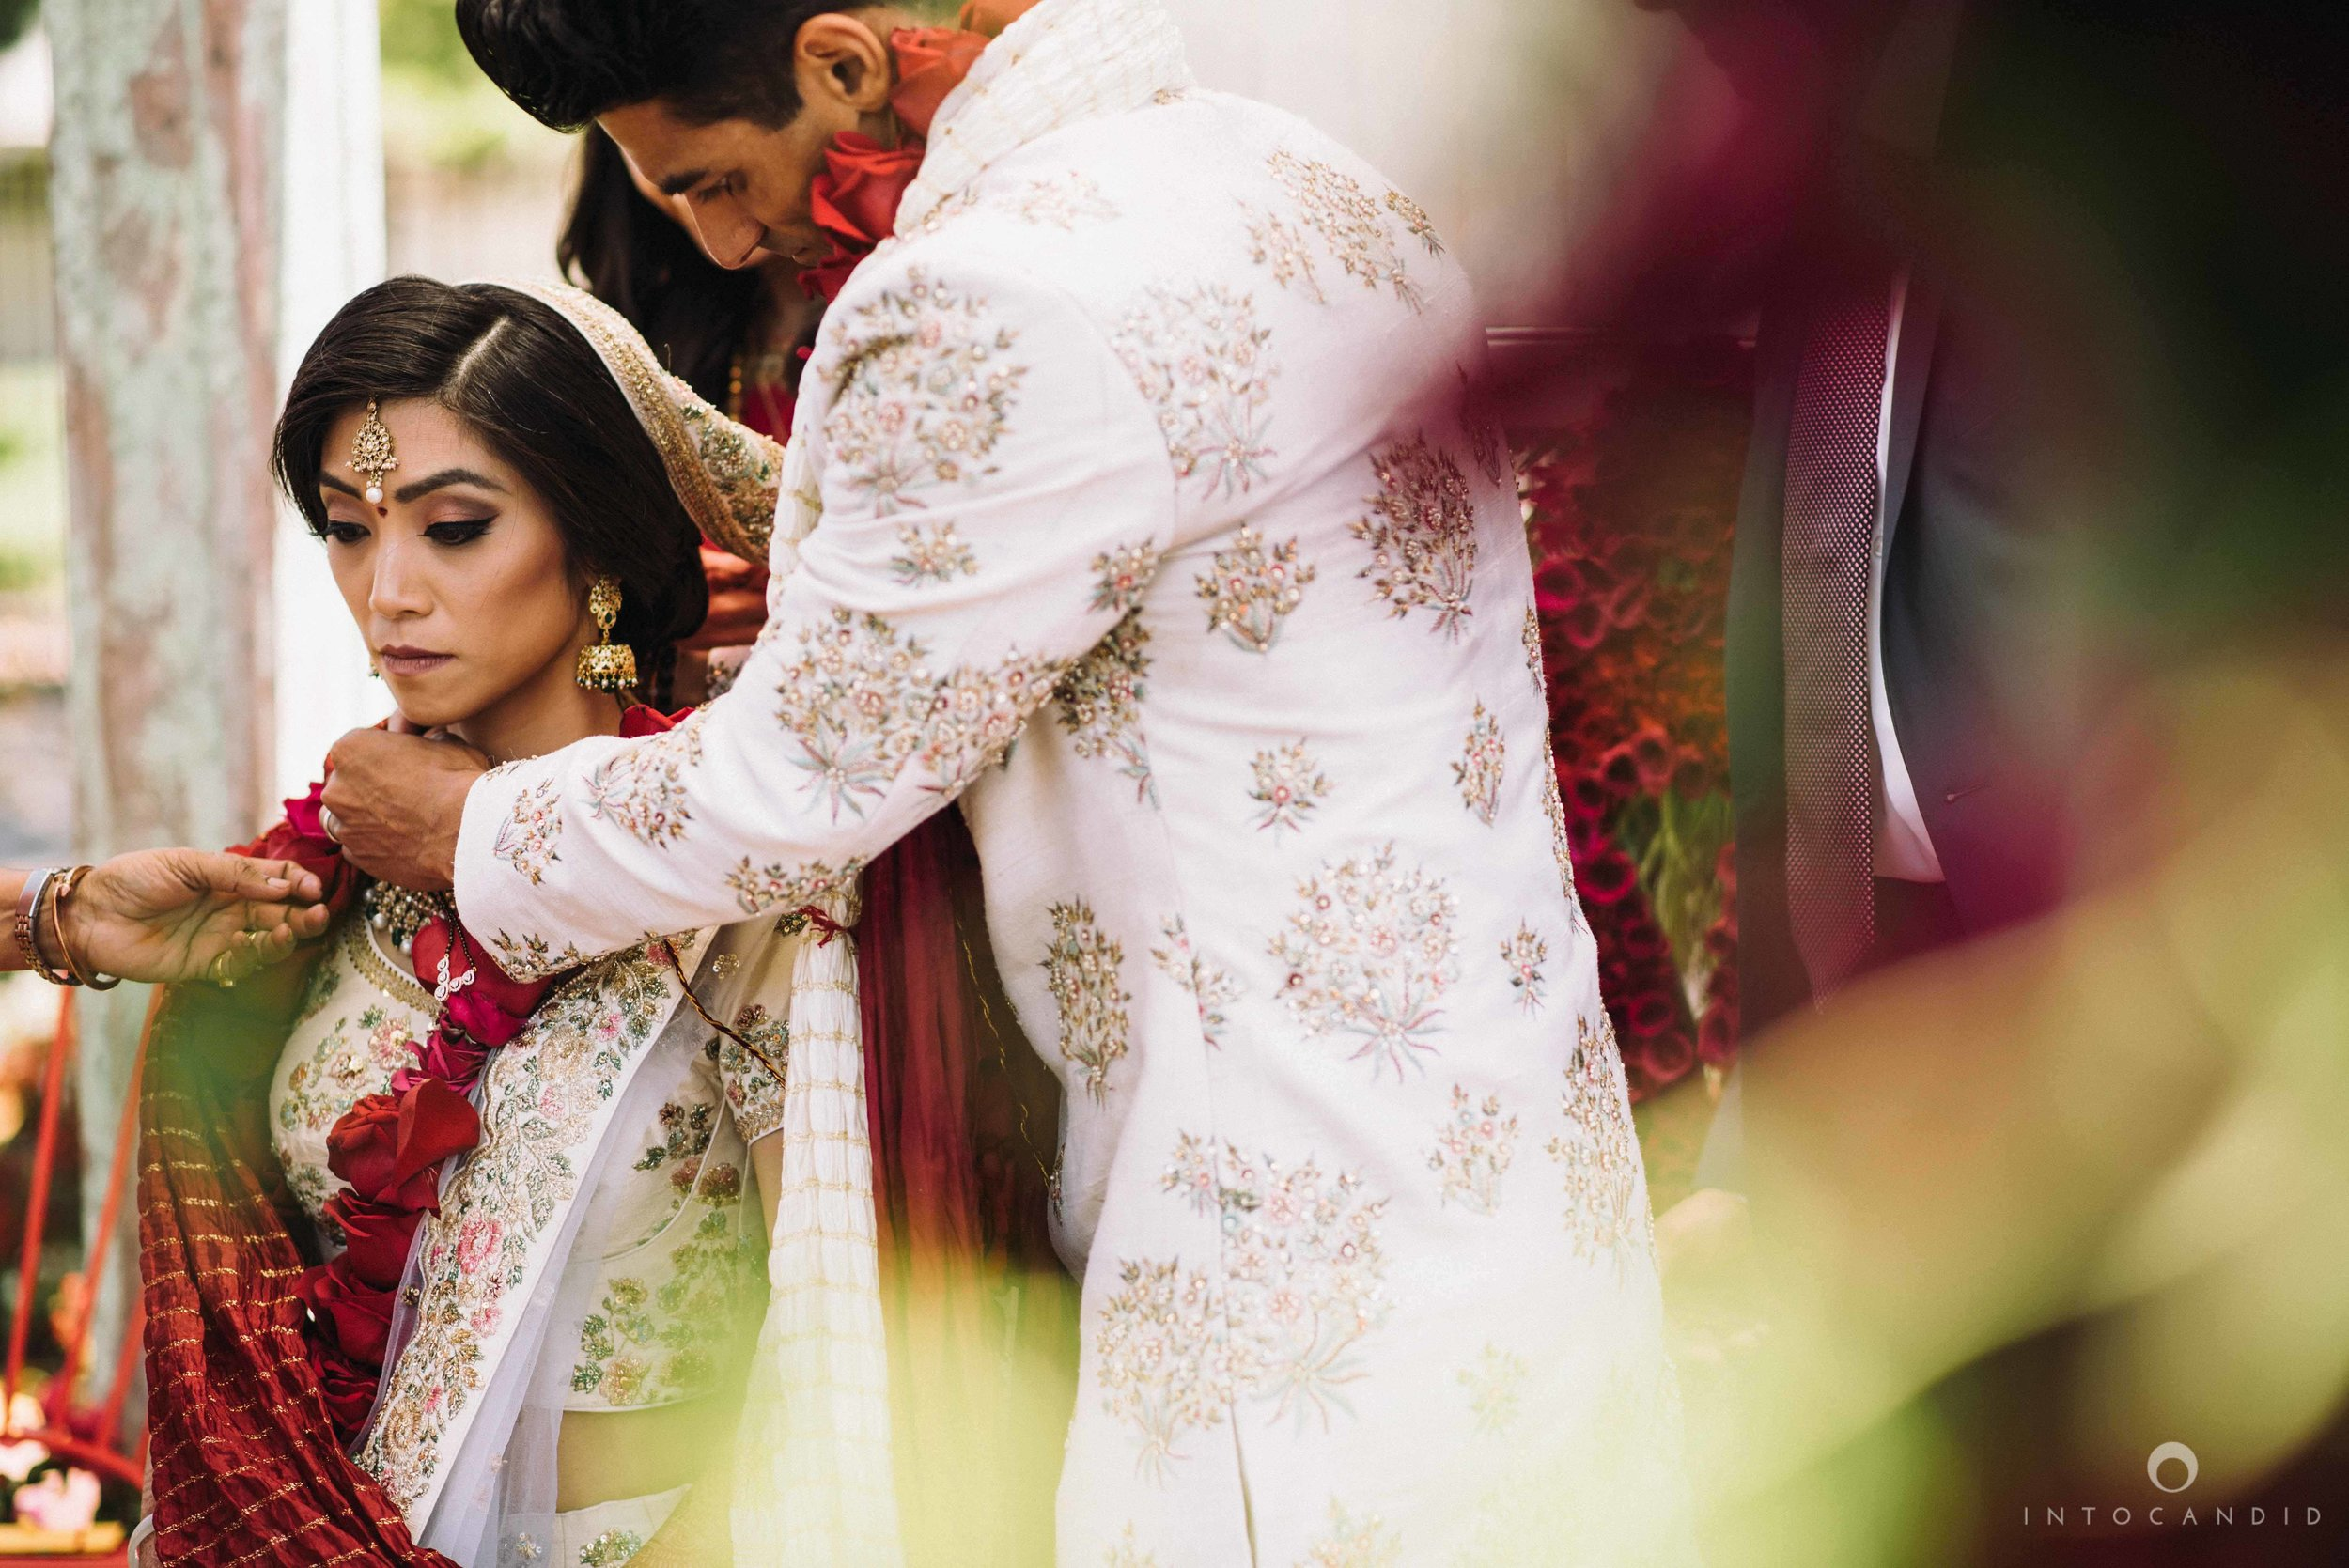 LosAngeles_Indian_Wedding_Photographer_AS_113.jpg